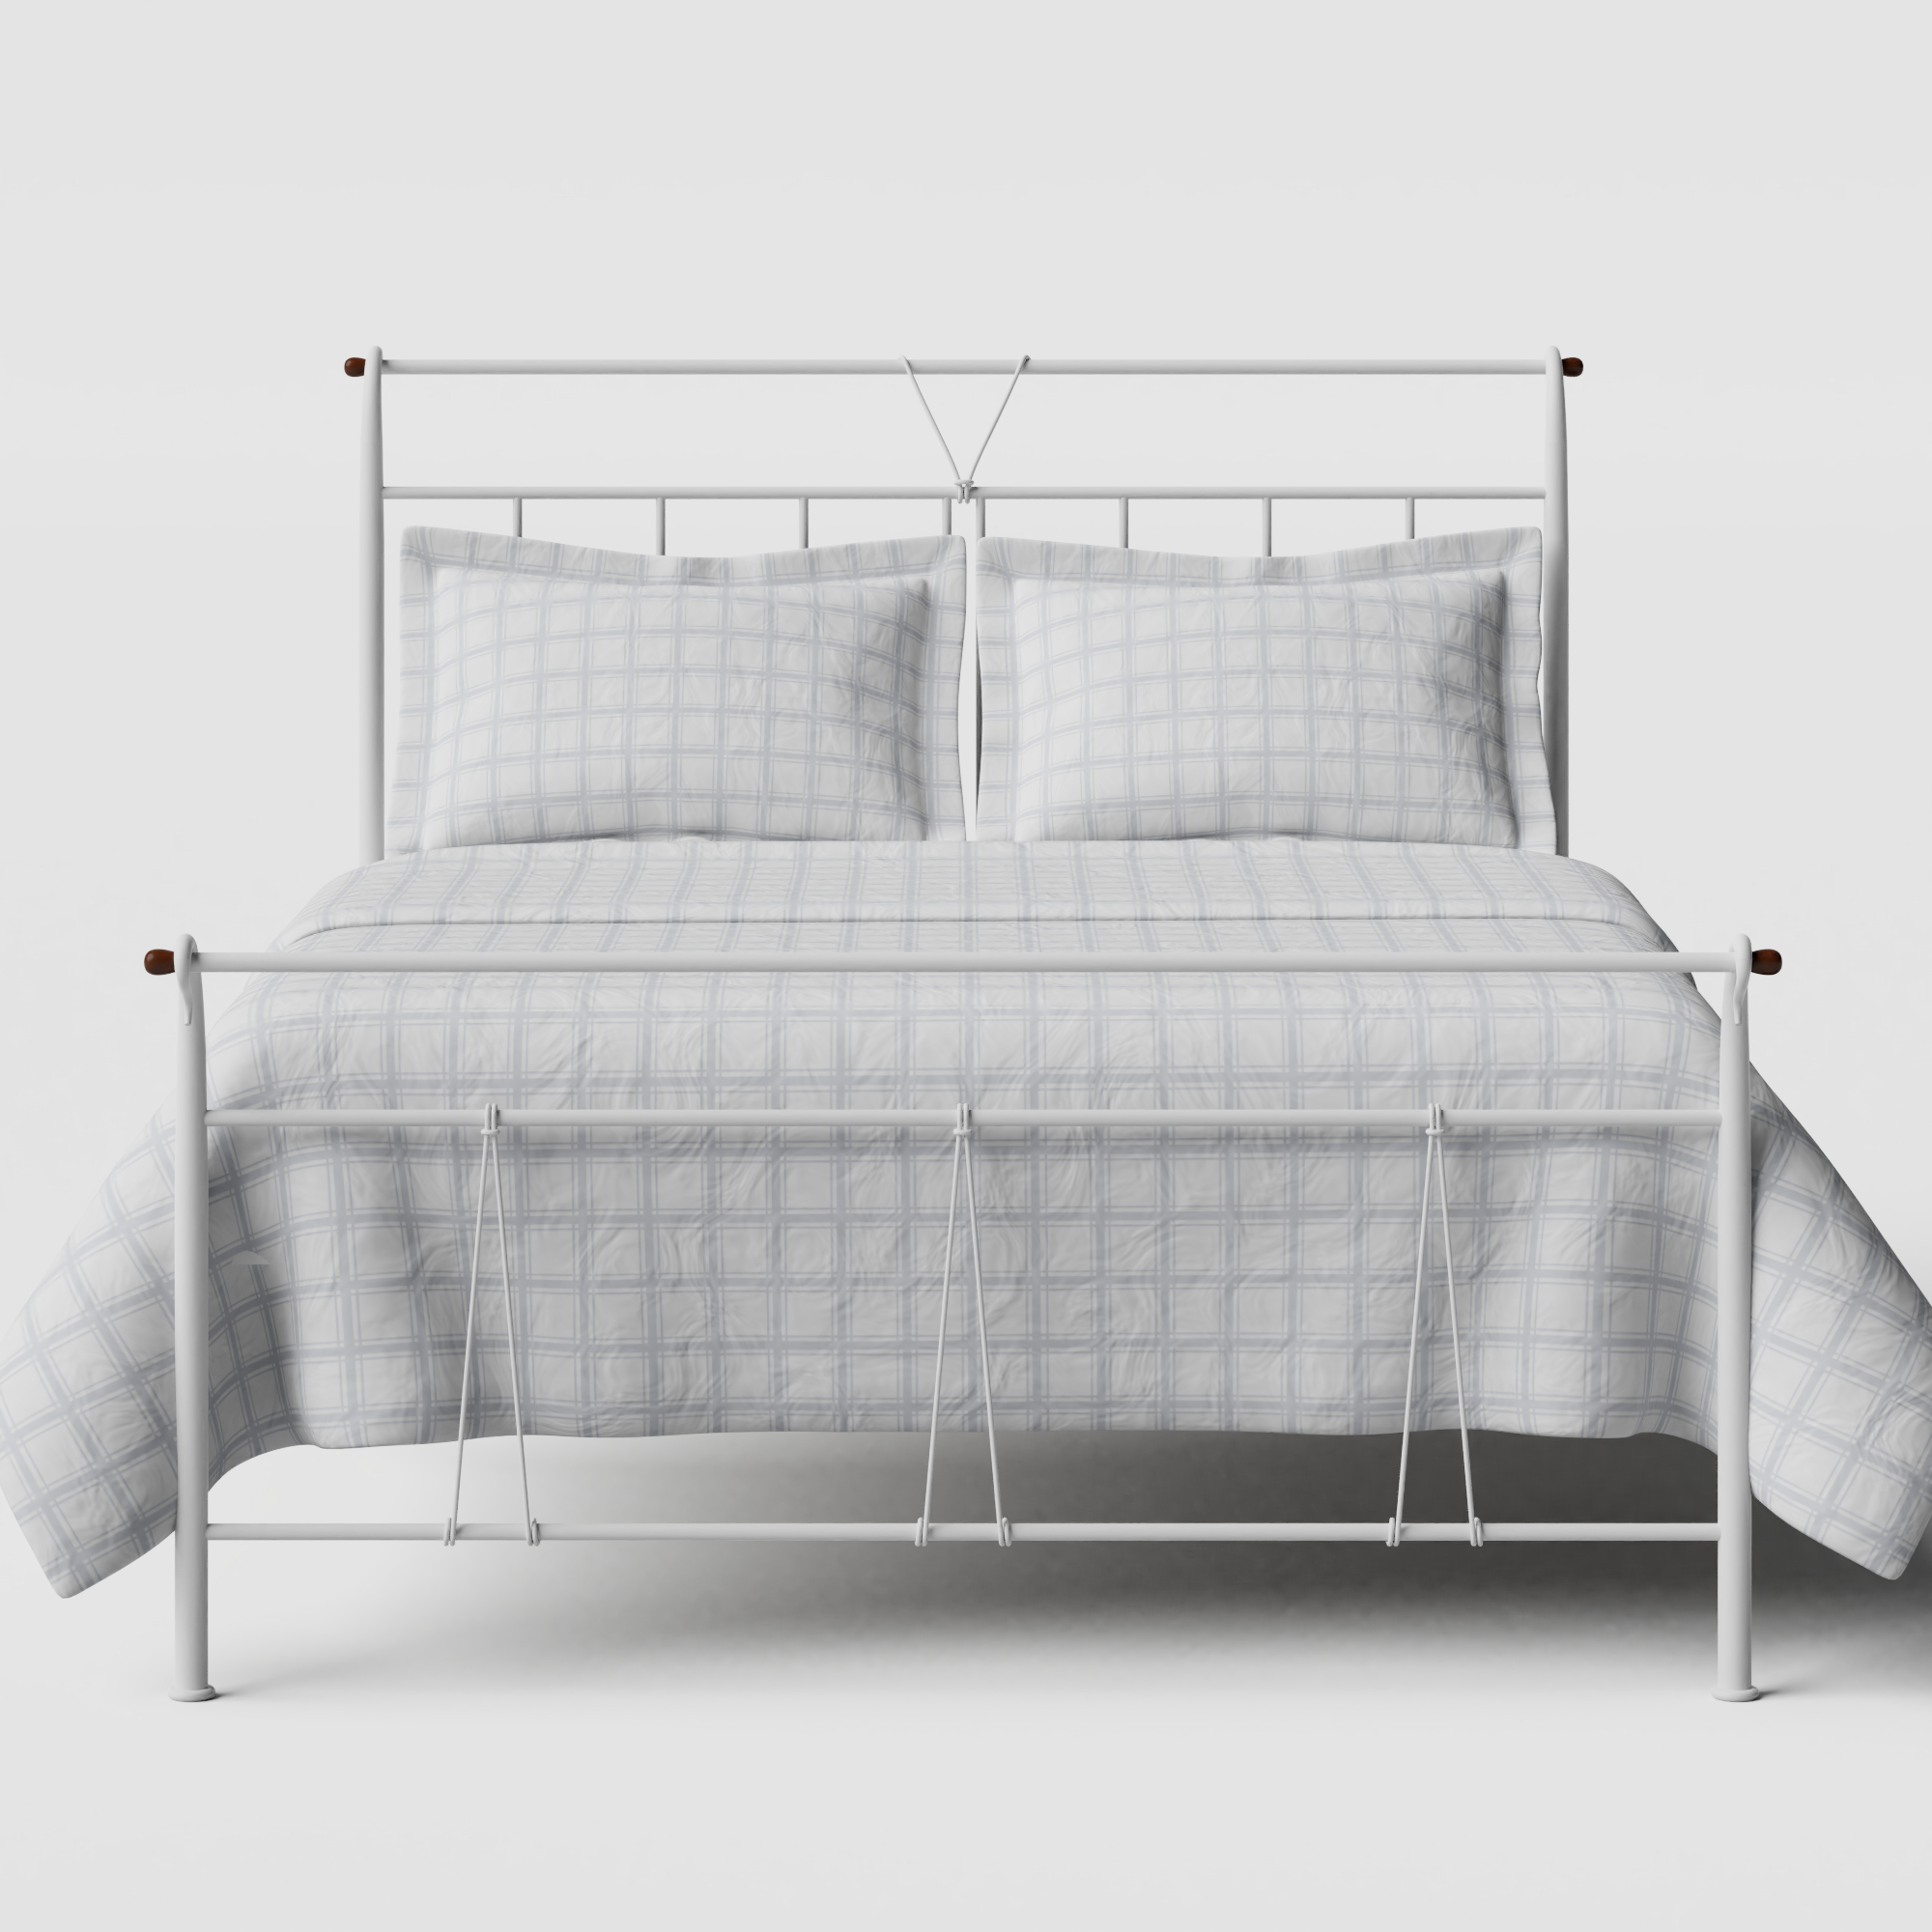 Pellini iron/metal bed in white